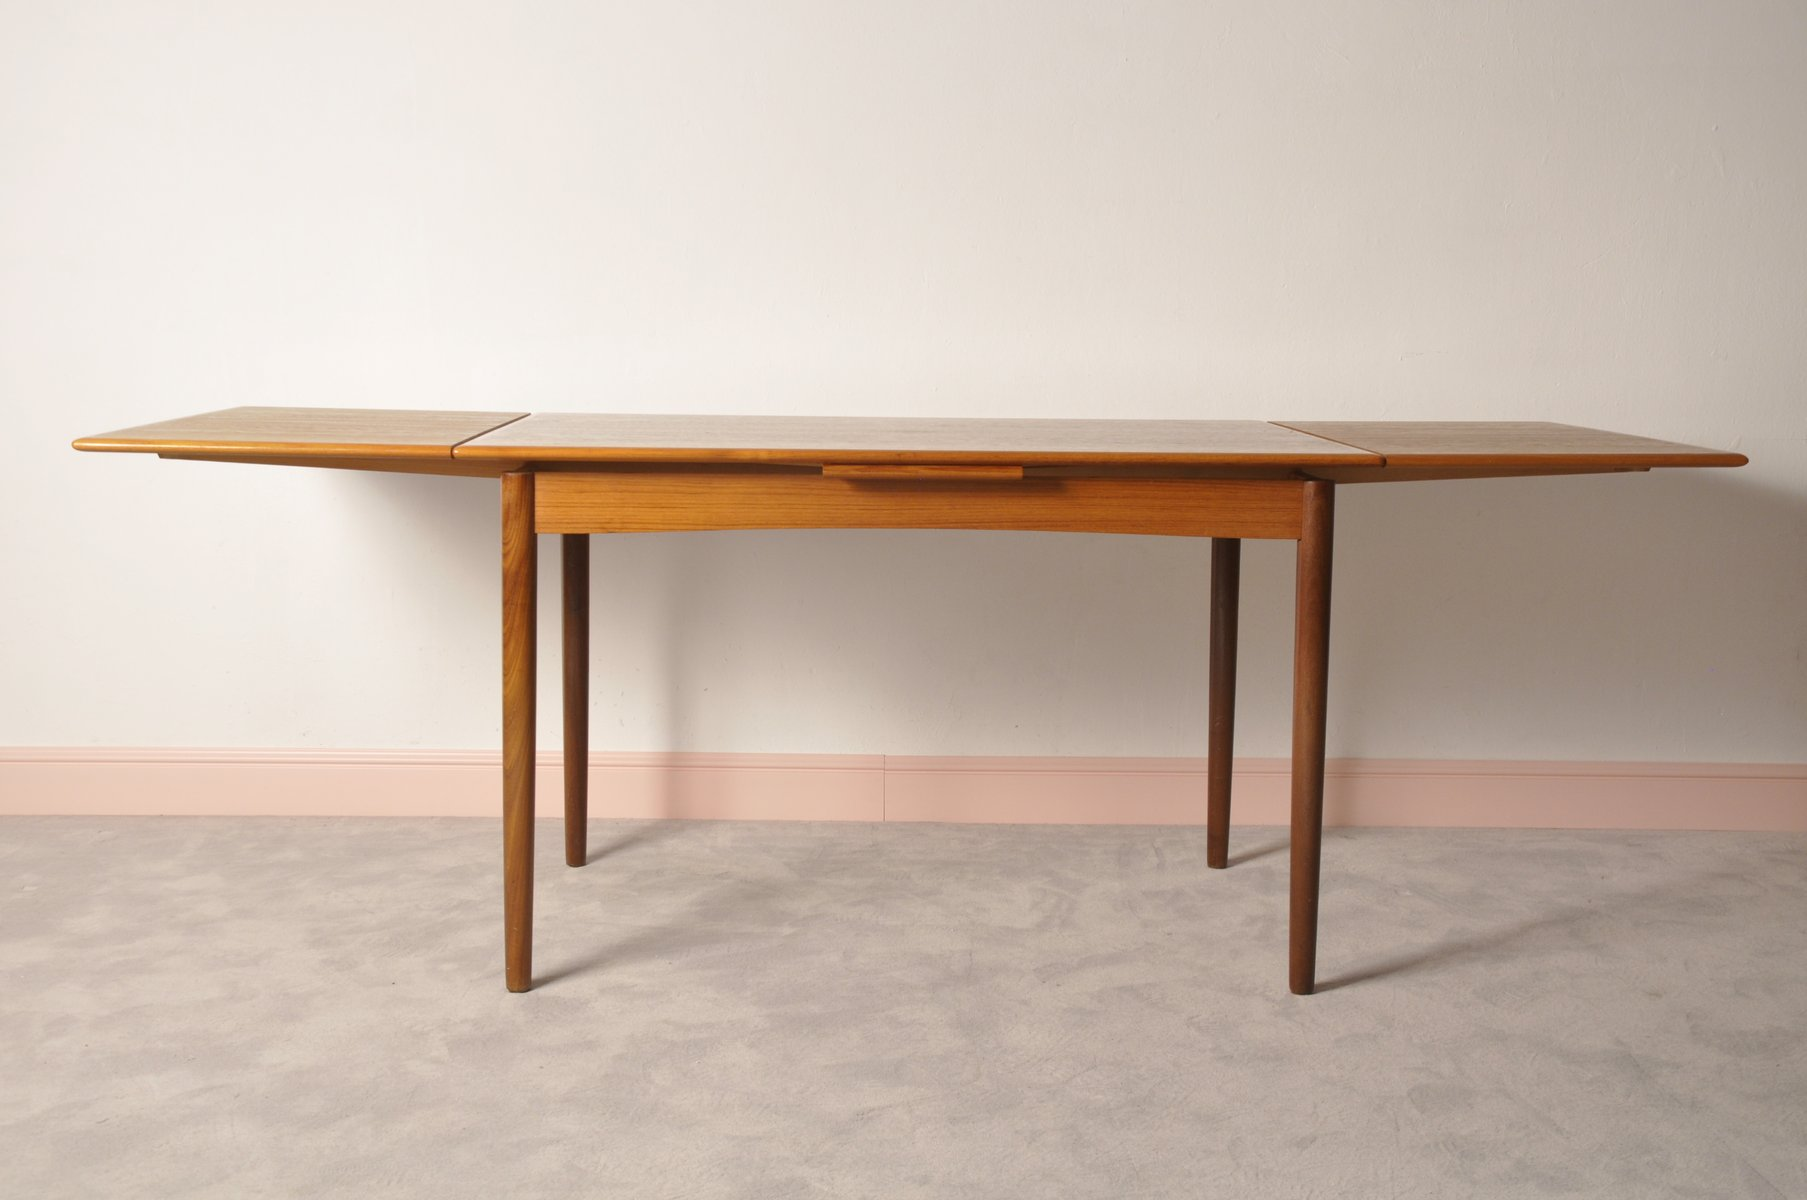 used dining table for sale qatar 28 images dining  : danish teak extendable dining table 1960s 2 from wallpapersist.com size 1807 x 1200 jpeg 88kB